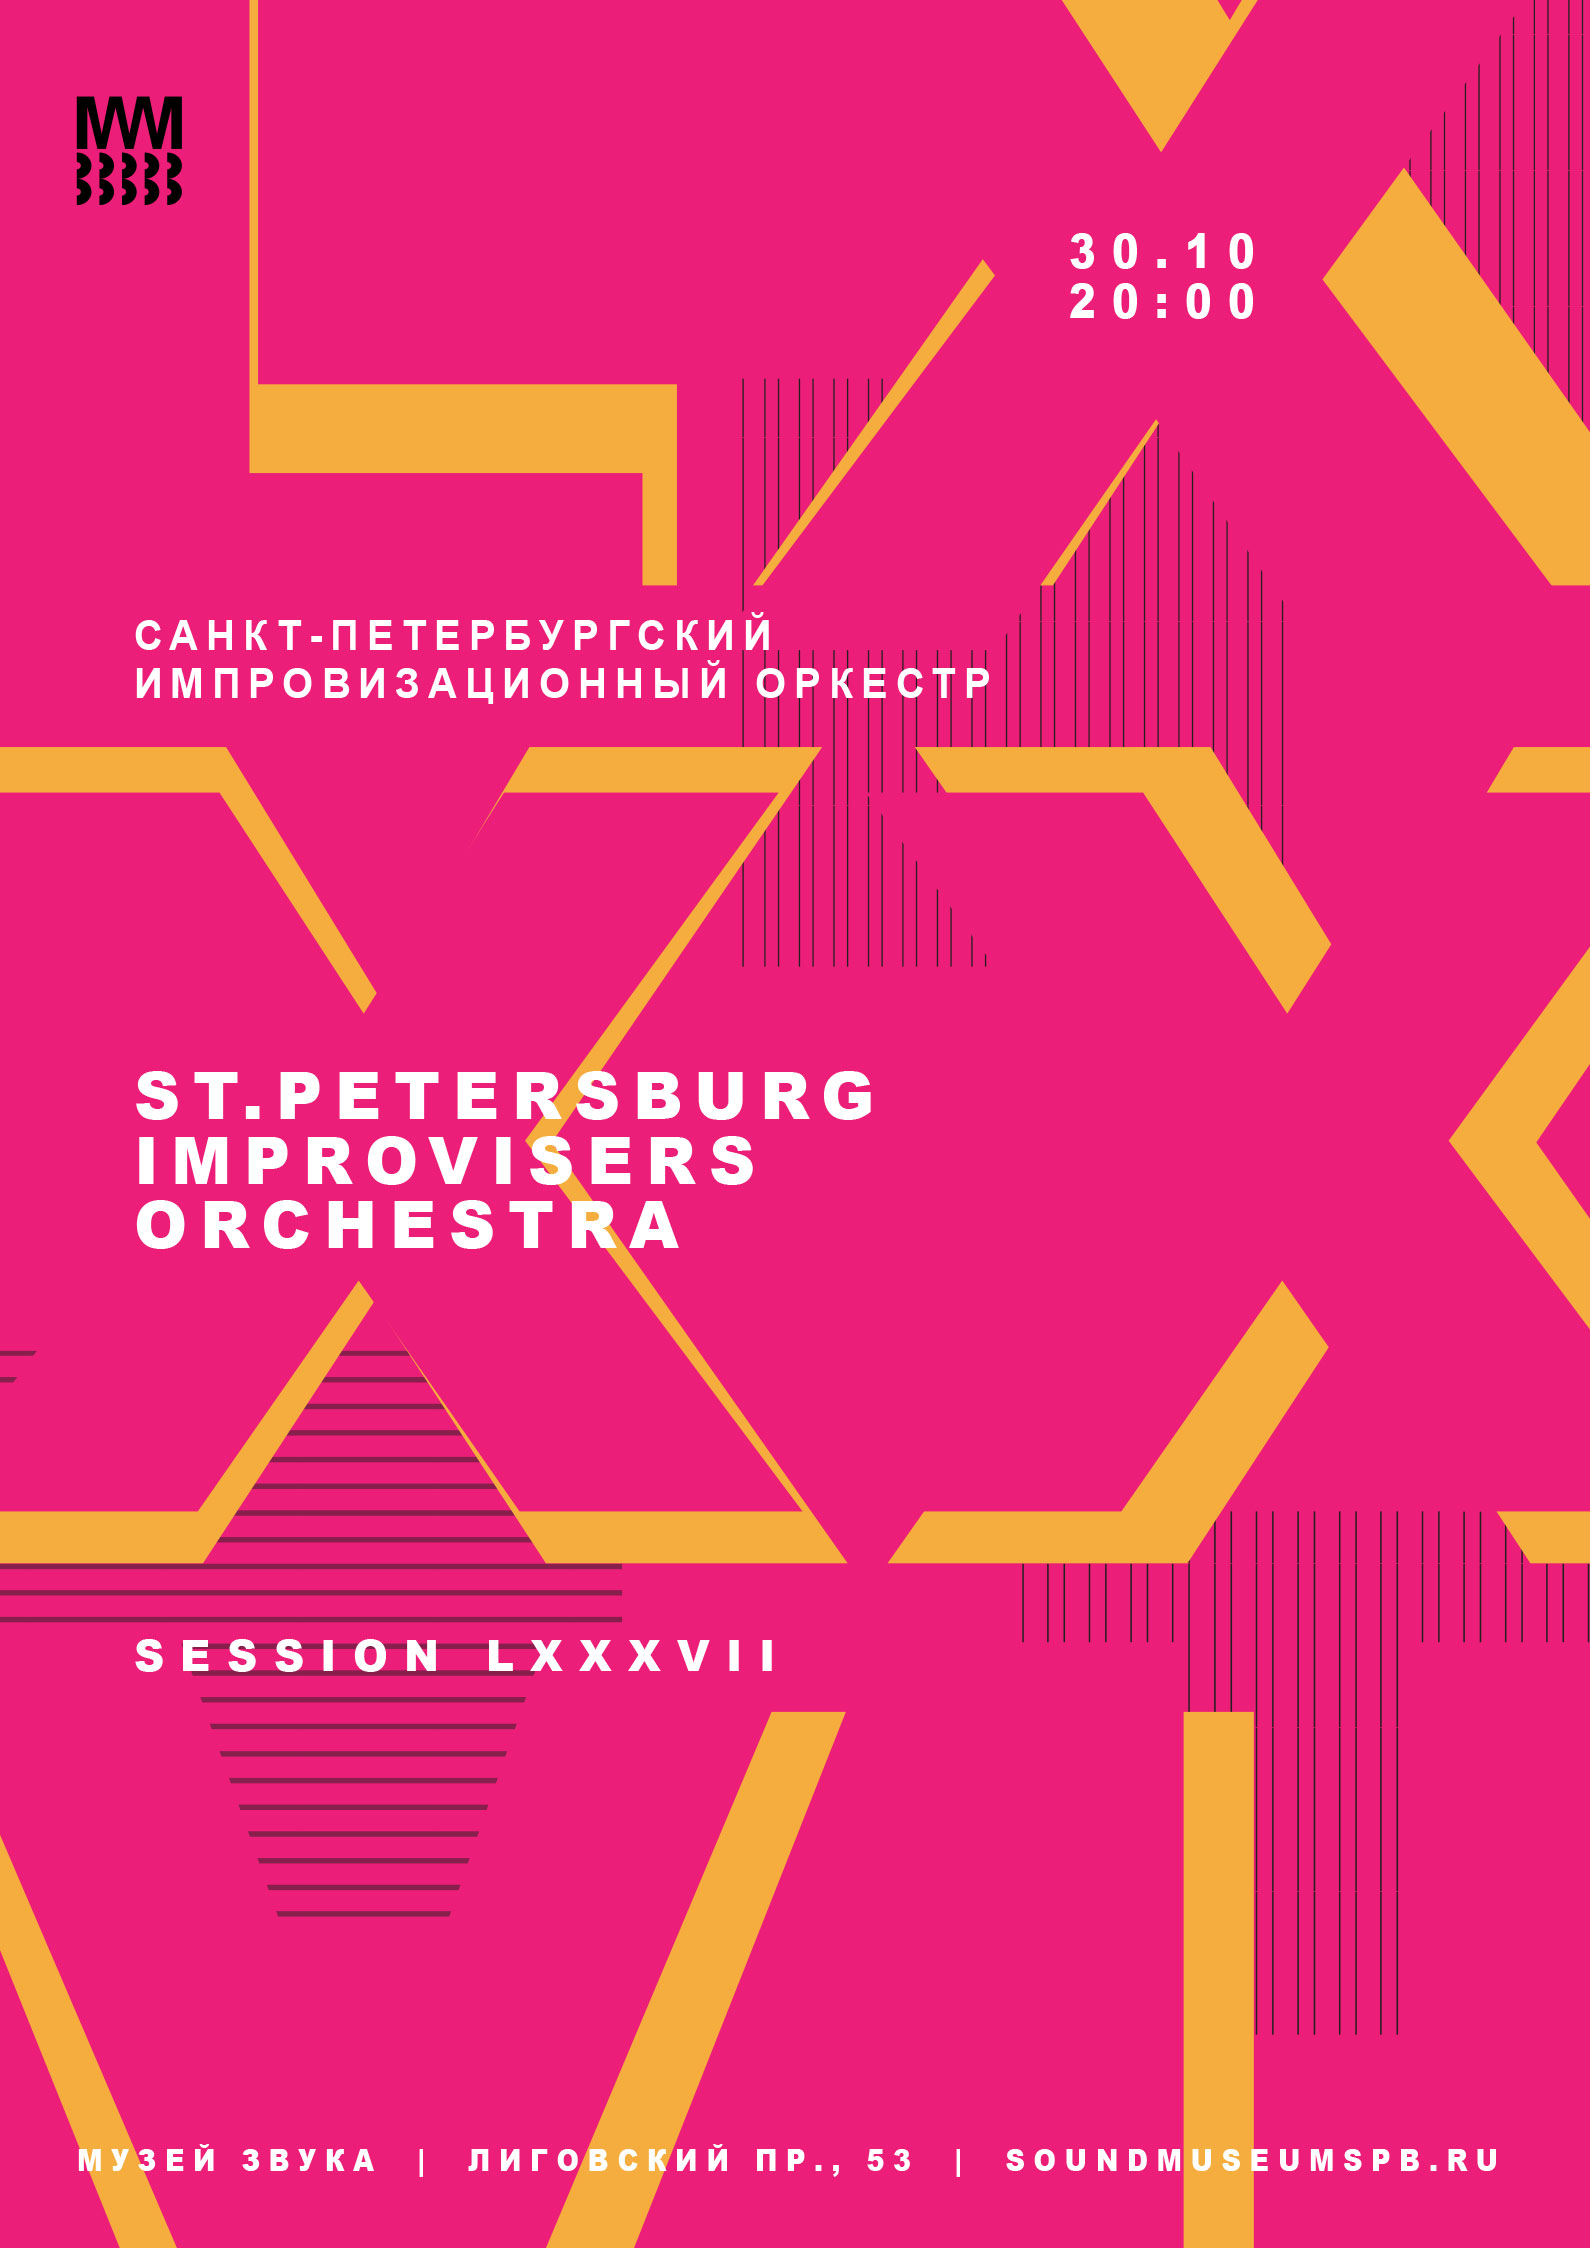 St.Petersburg Improvisers Orchestra: Session LXXXVII